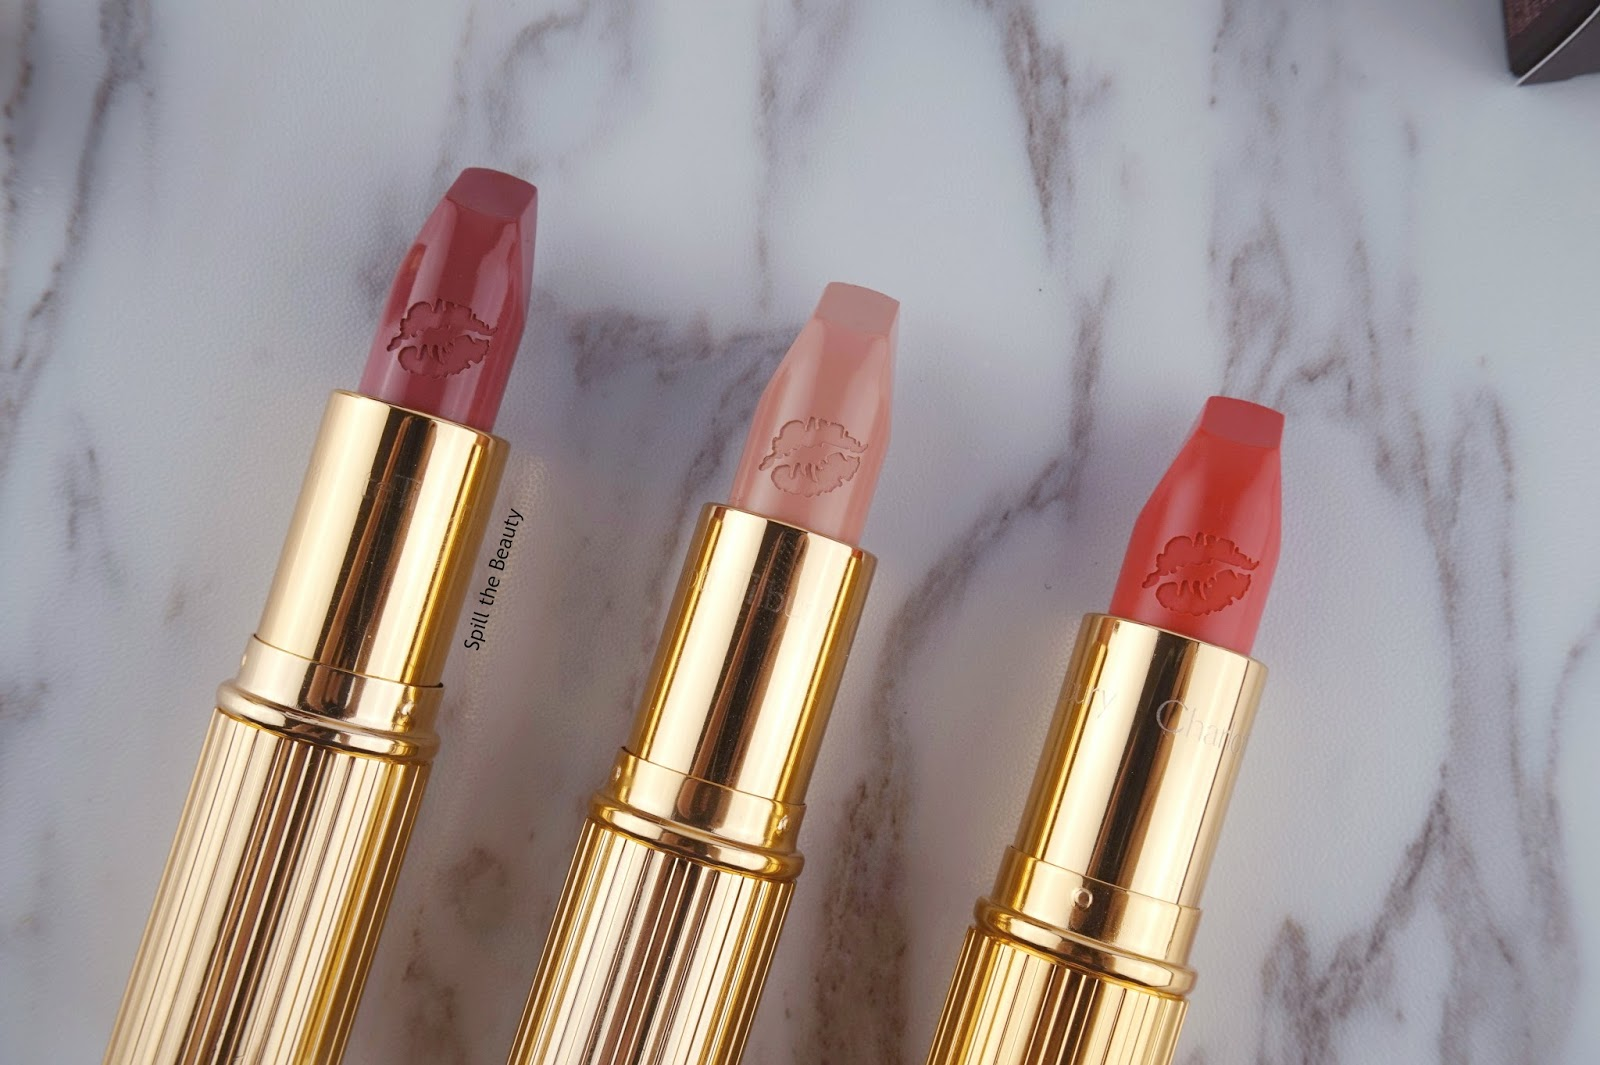 charlotte tilbury hot lips lipstick secret salma kim k.w. miranda may review swatches look